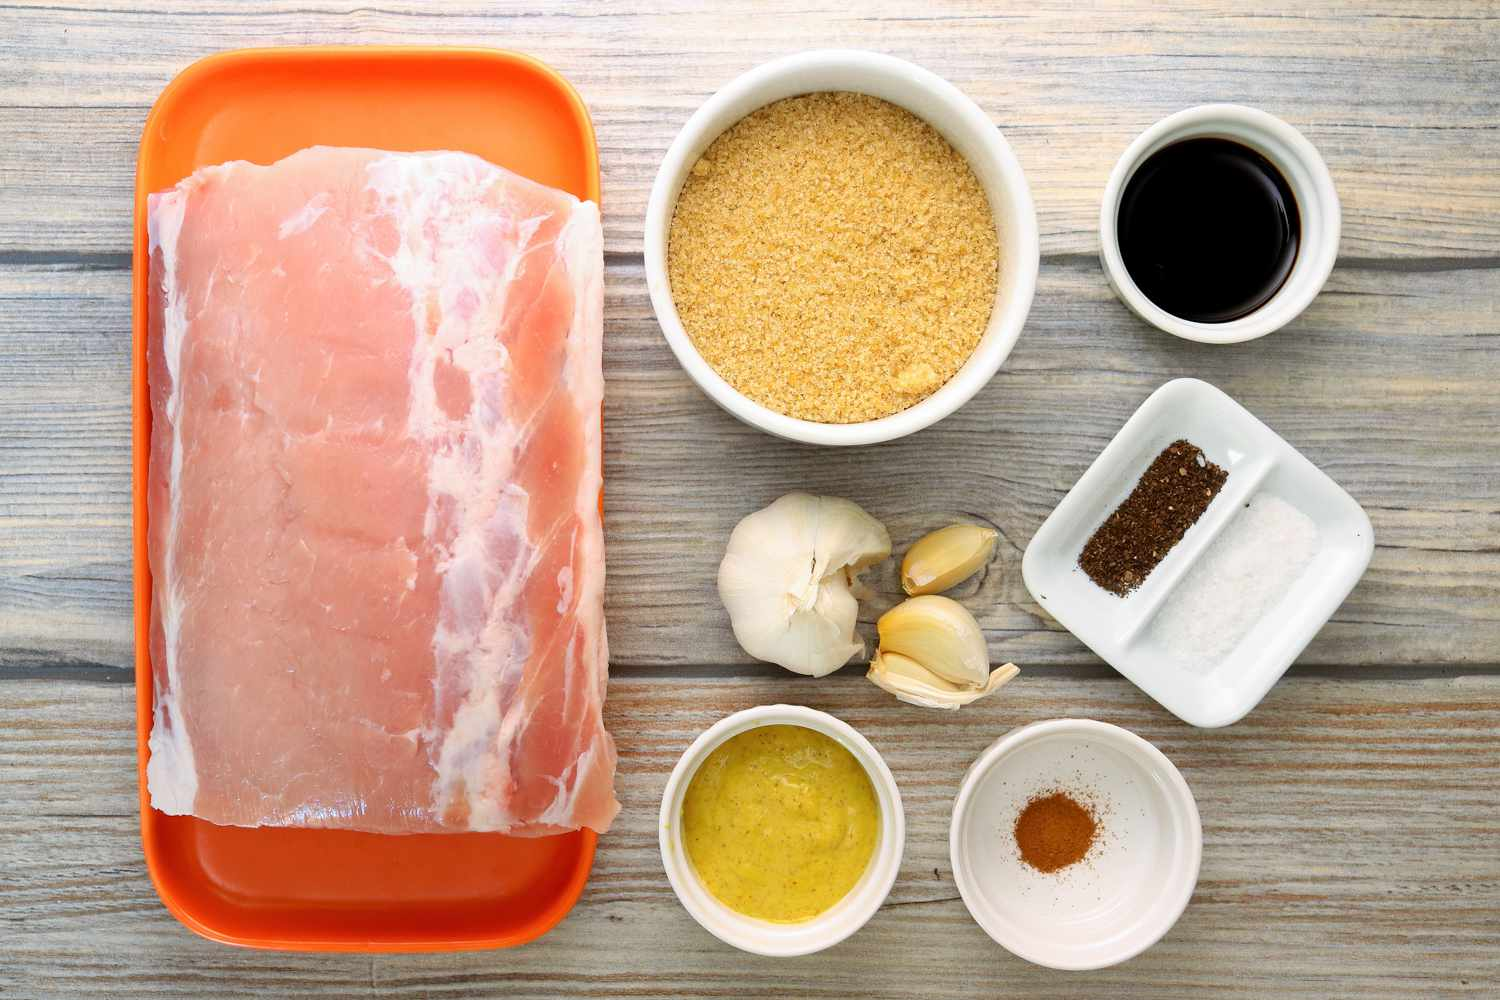 Gather the ingredients for the brown sugar pork loin